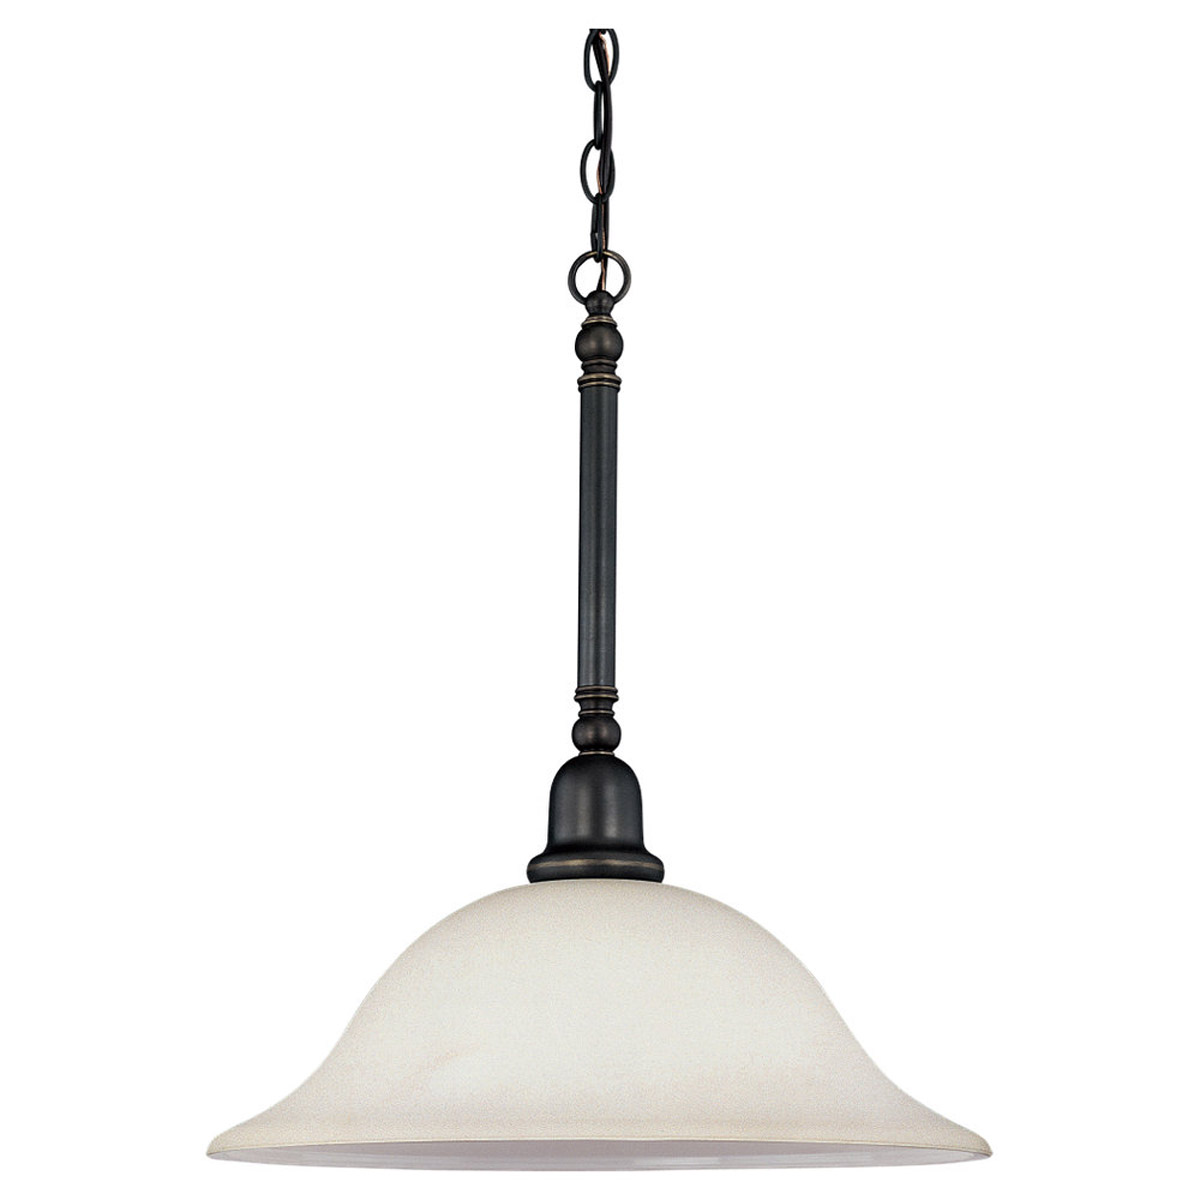 Sea Gull 66060-782 Sussex 1 Light 16 inch Heirloom Bronze Pendant Ceiling Light in Satin Etched Glass photo